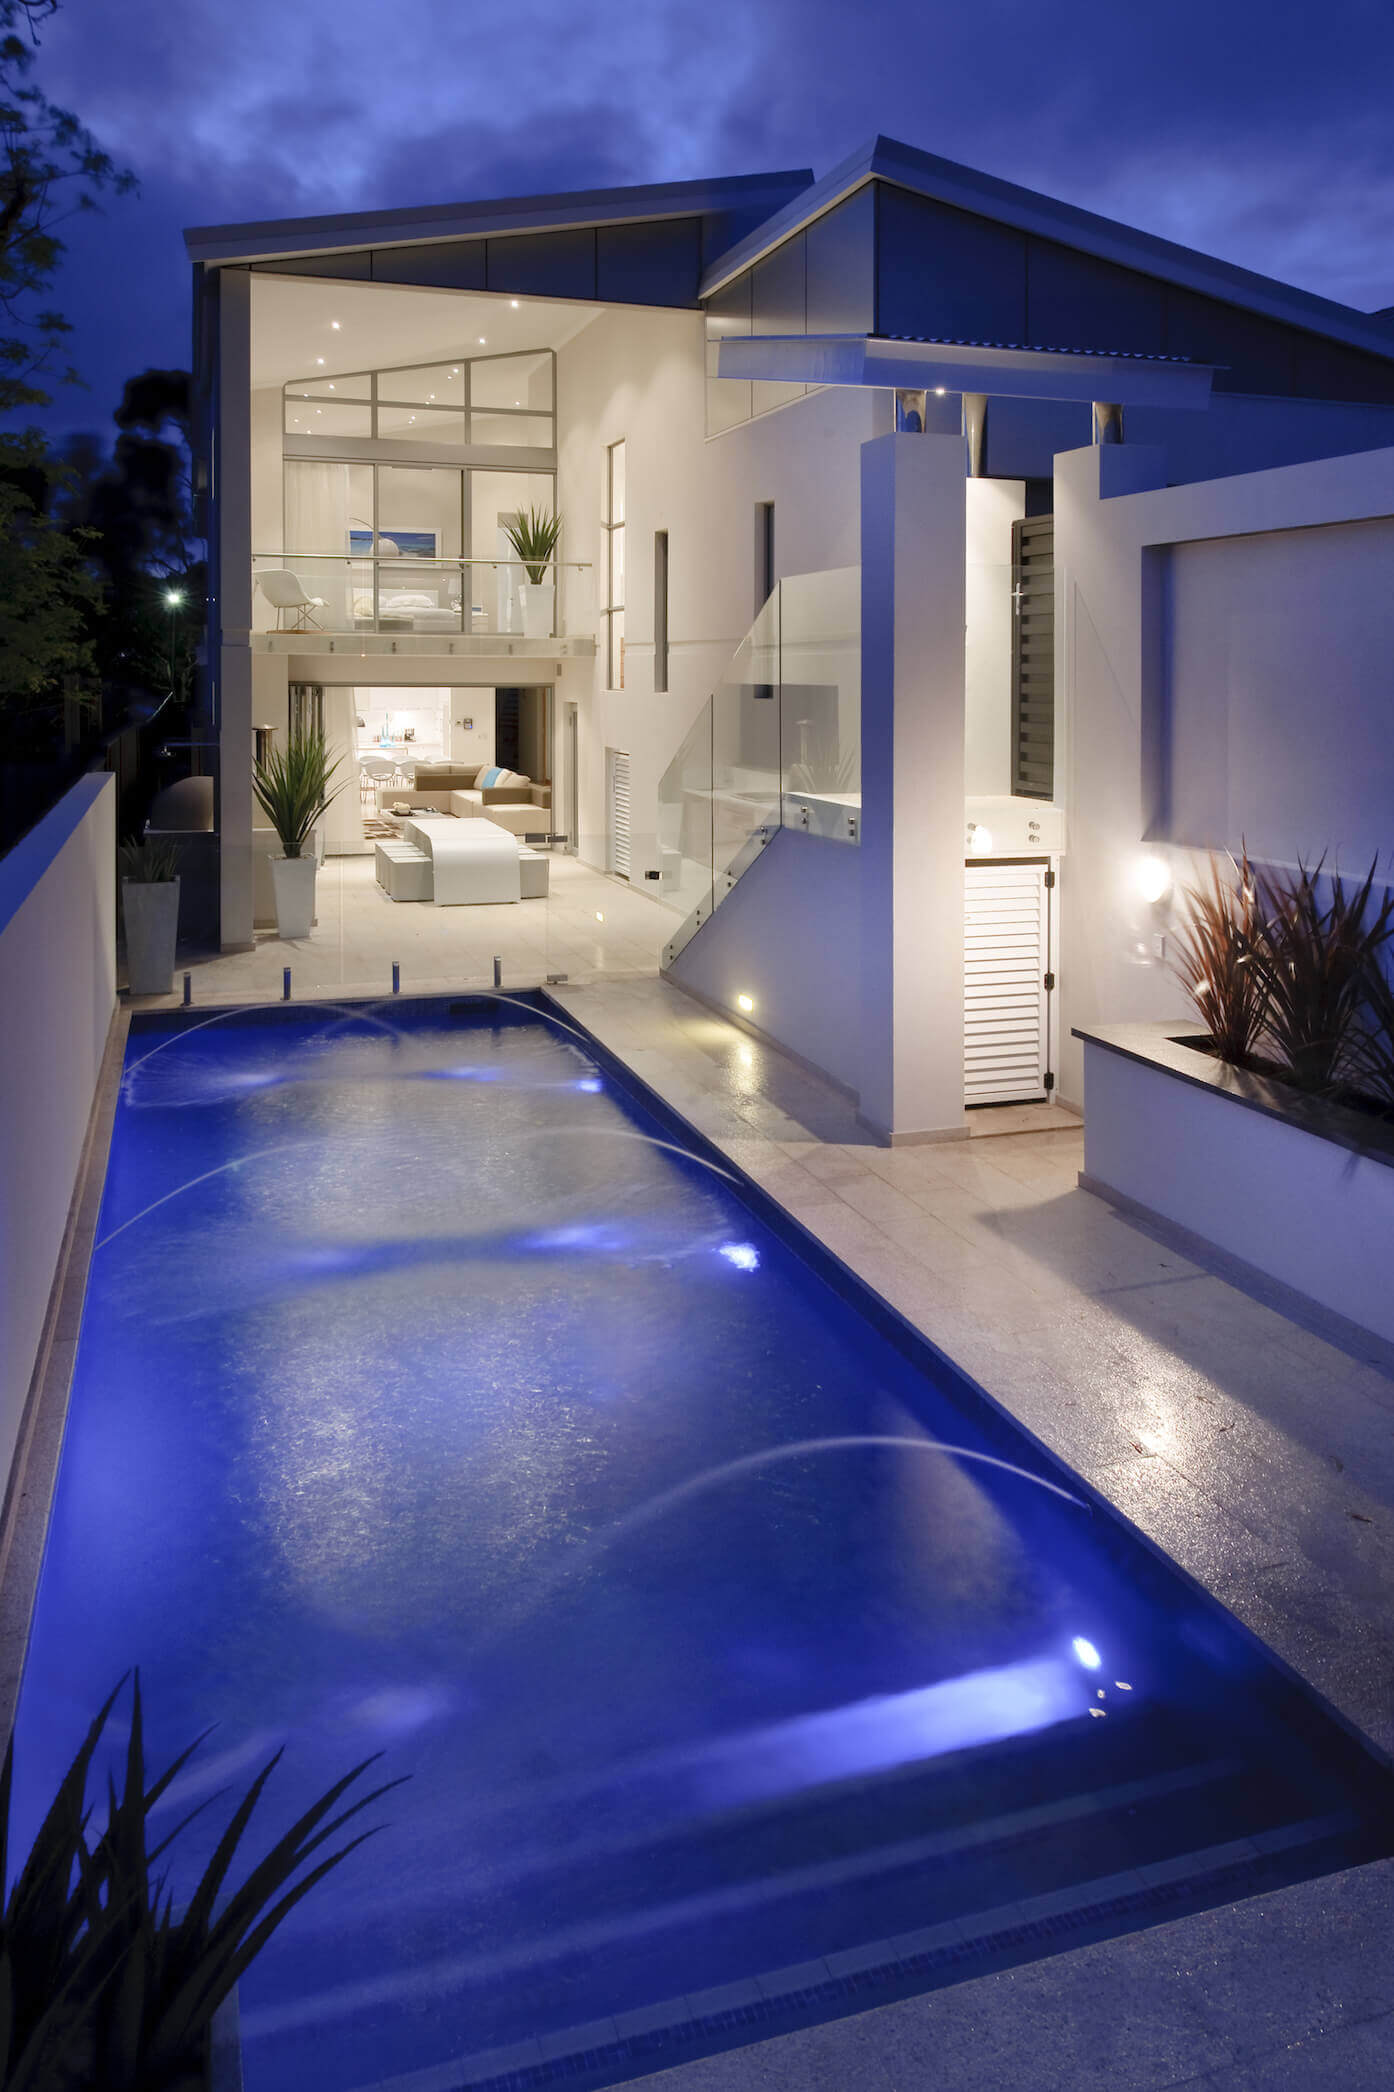 Courtyard holds massive fountain-equipped pool, wrapped with patio extending from the home interior through full height glass. Both patios have expansive view over this space, while rear gate at right provides stair entryway for guests.